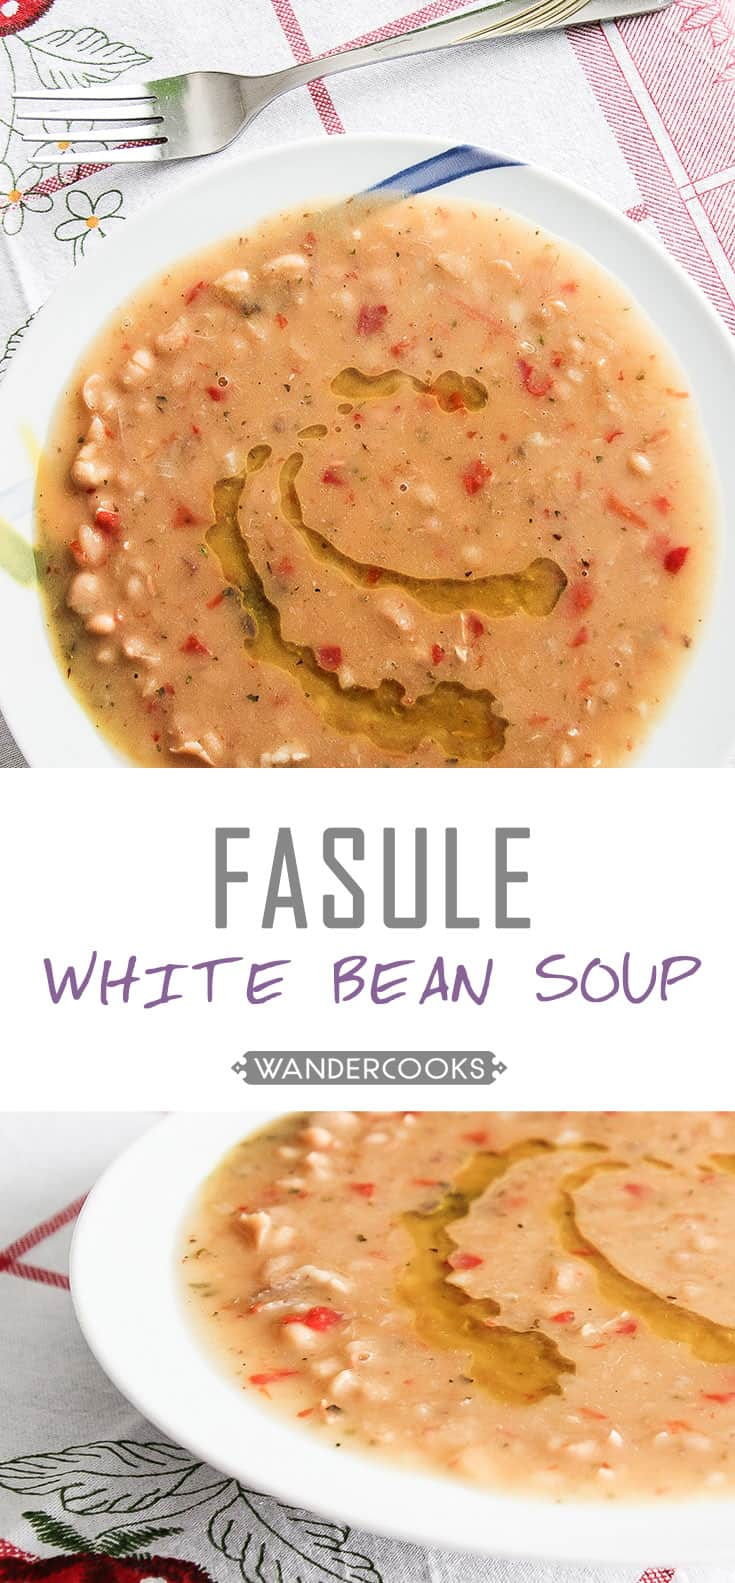 Jani Me Fasule - Albanian White Bean Soup- a light yet filling lunch or dinner that tastes even better the next day. | wandercooks.com